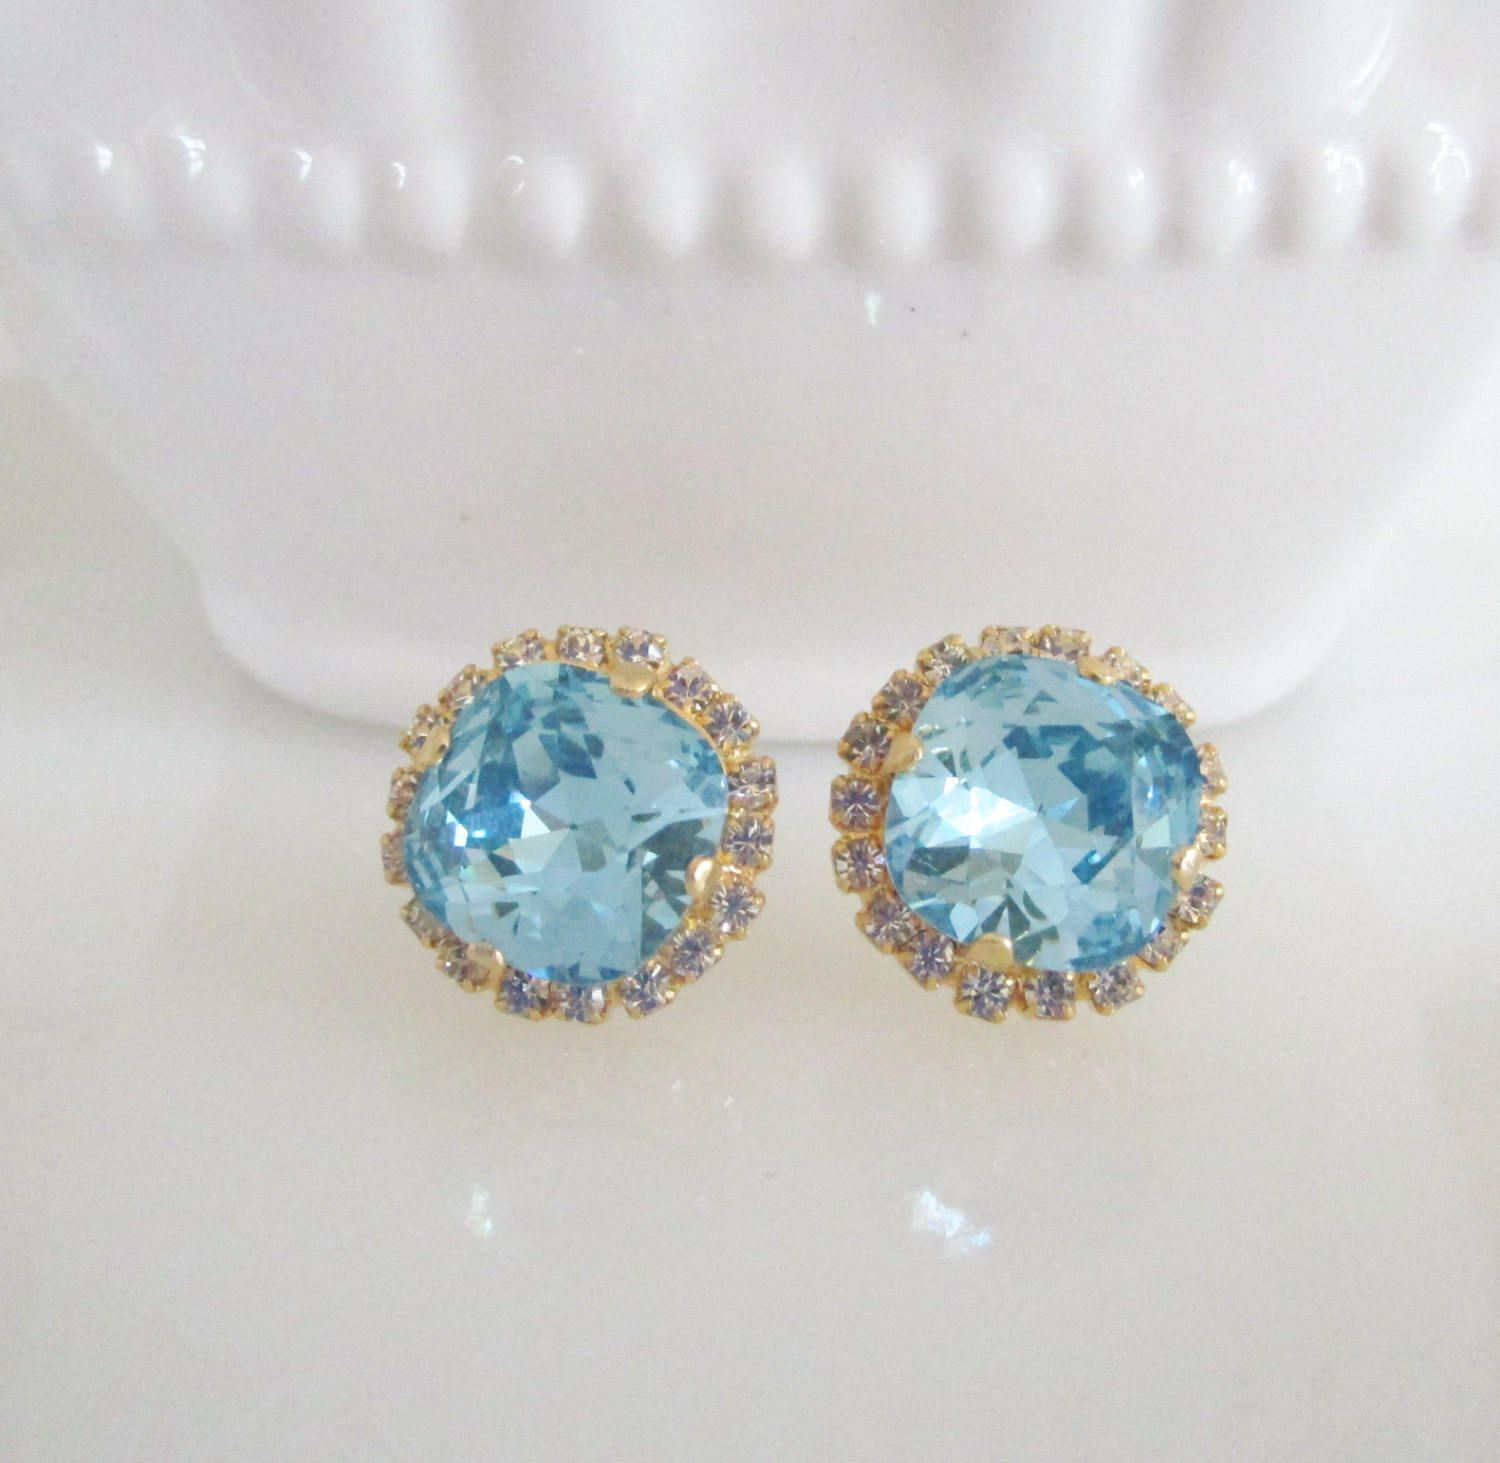 Blue Bridal Earings Wedding Earrings Swarovski Crystal Aquamarine Something Post Stud Gold